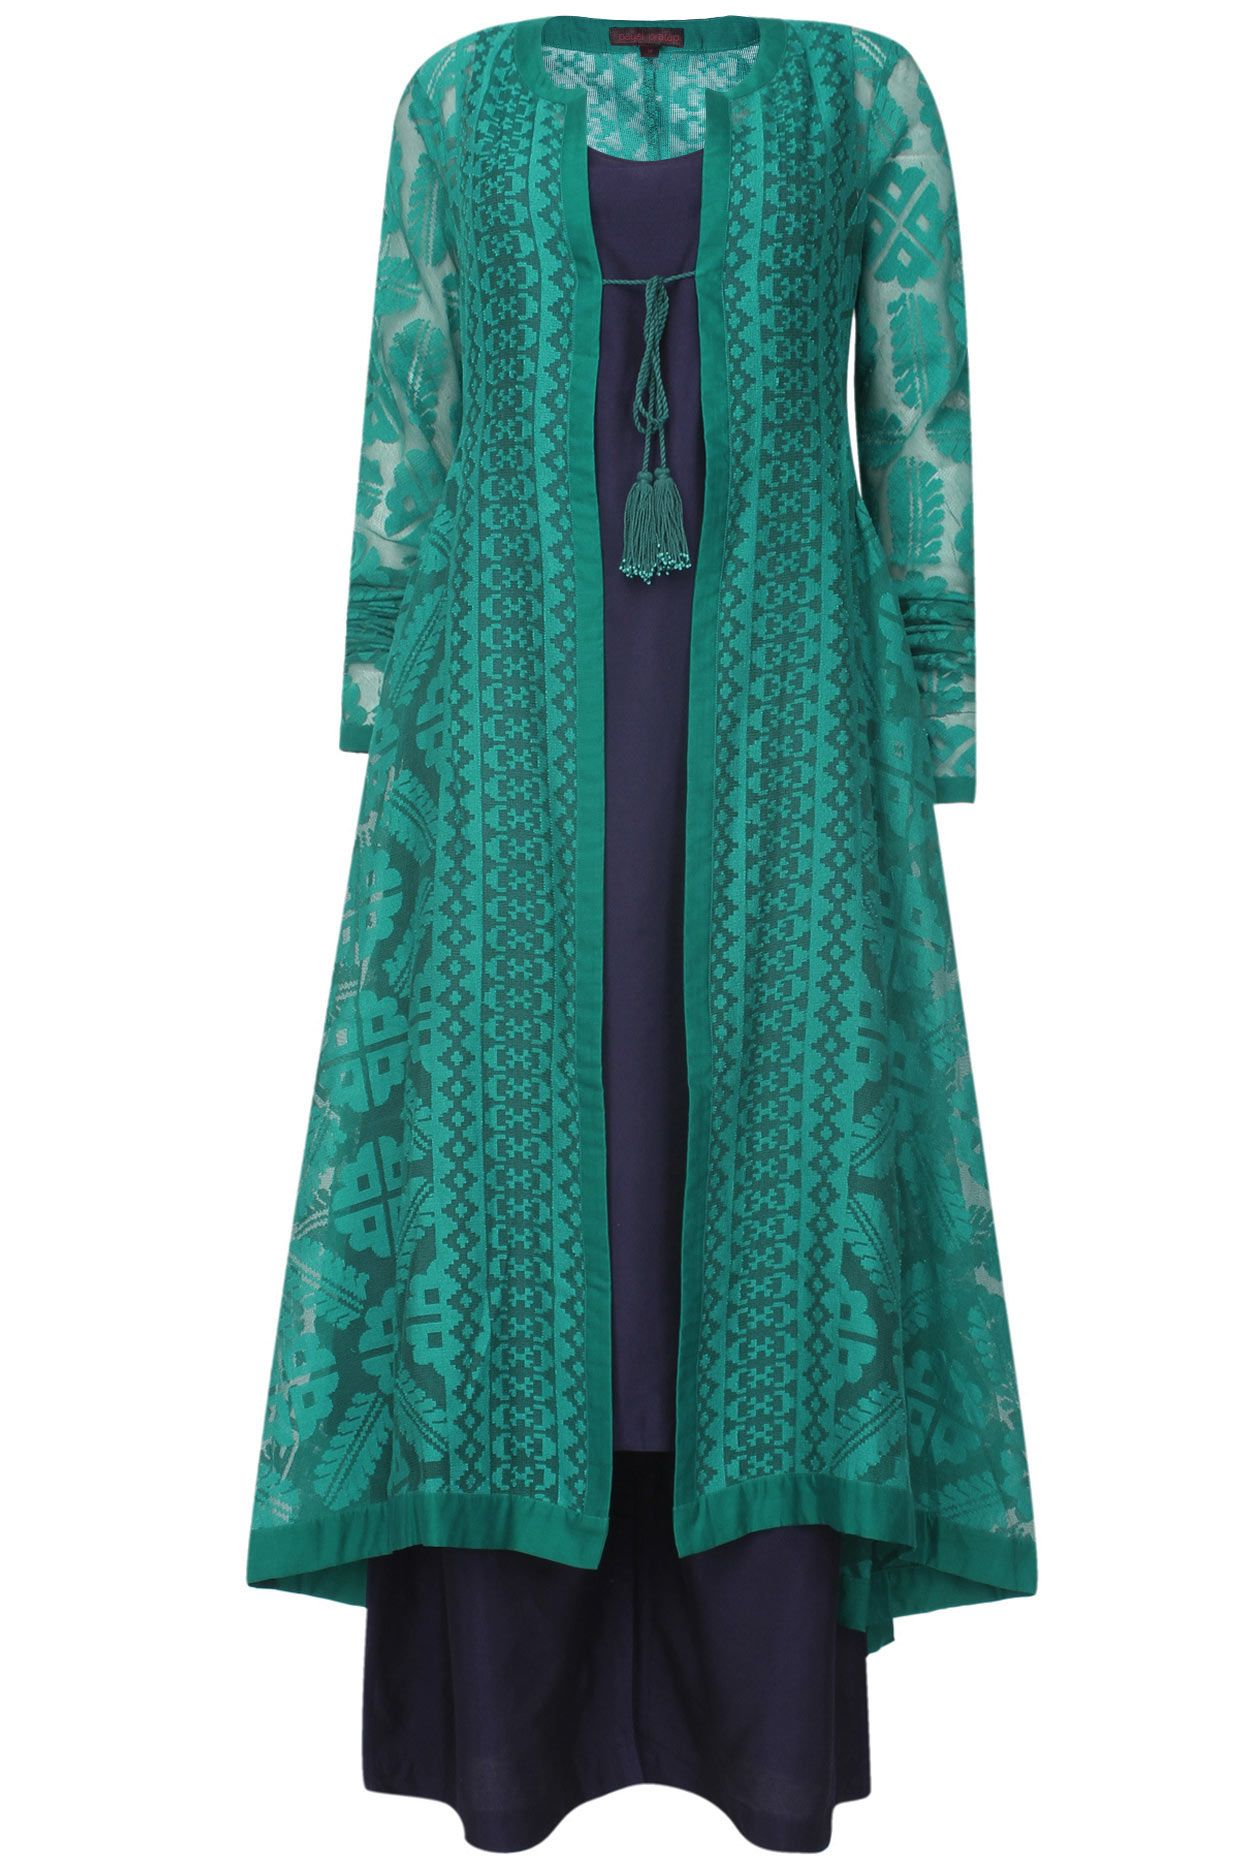 Teal Jaquard Front Open Jacket Kurta Navy Slip And Pants